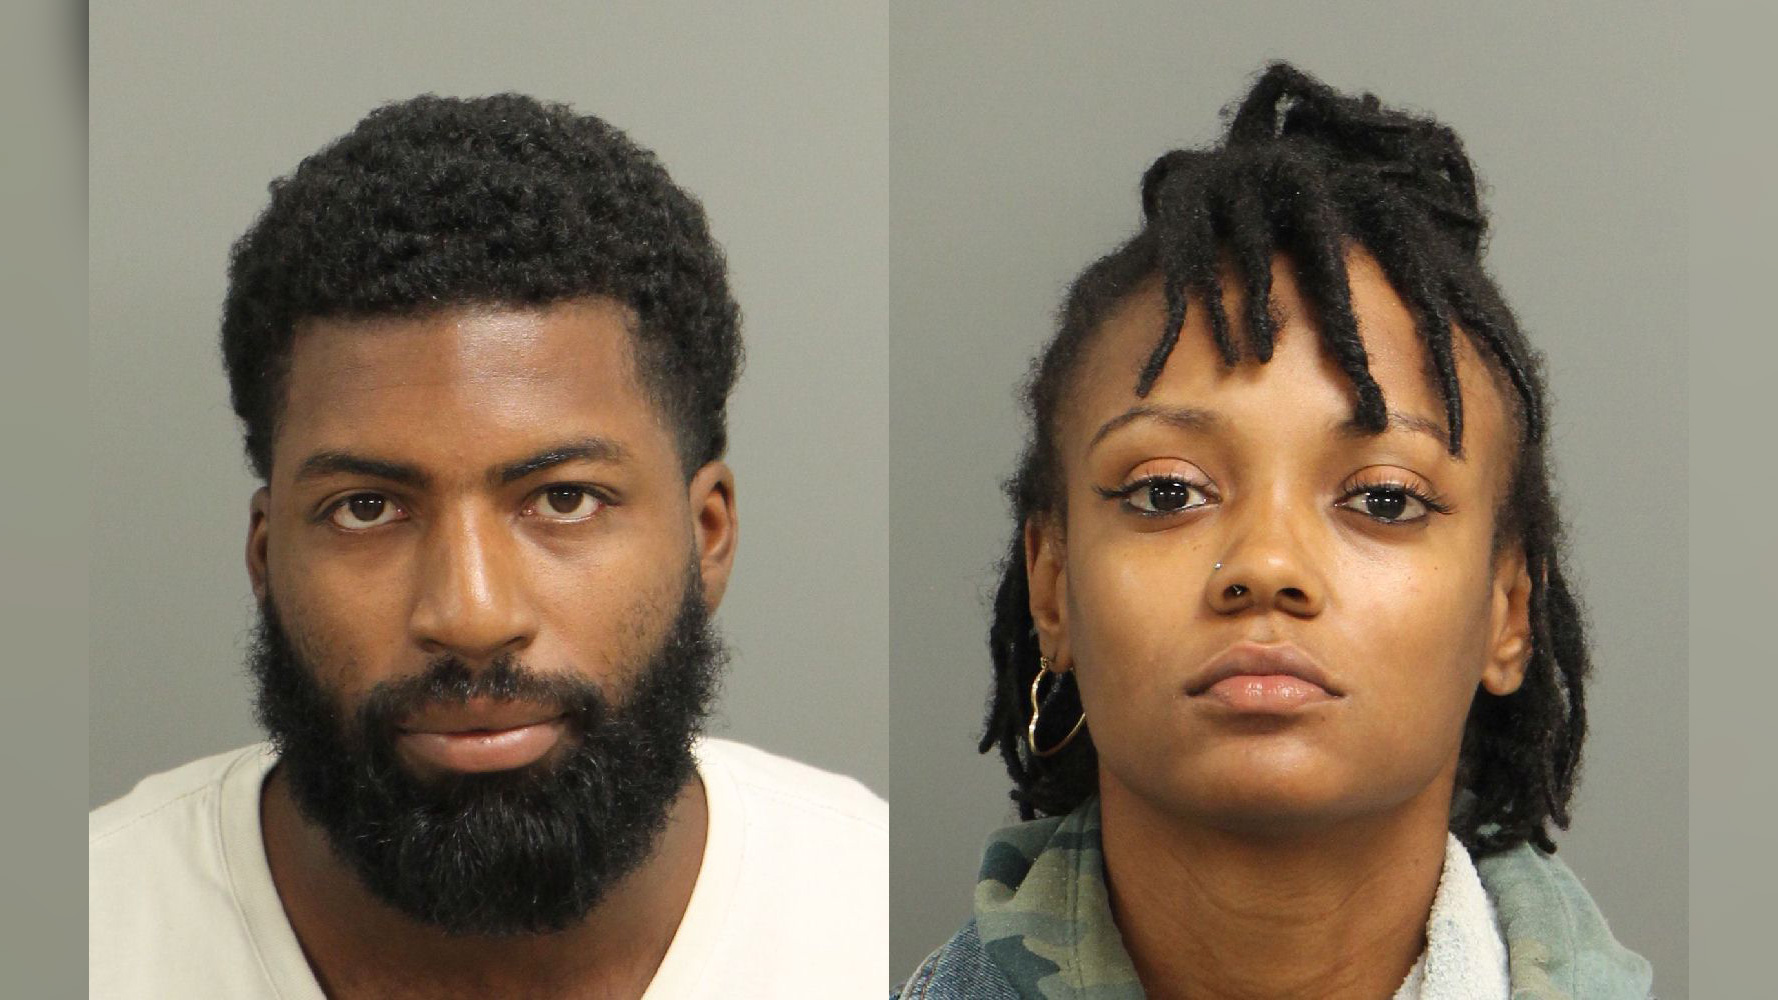 Black dating in raleigh nc what happened to seals face injury